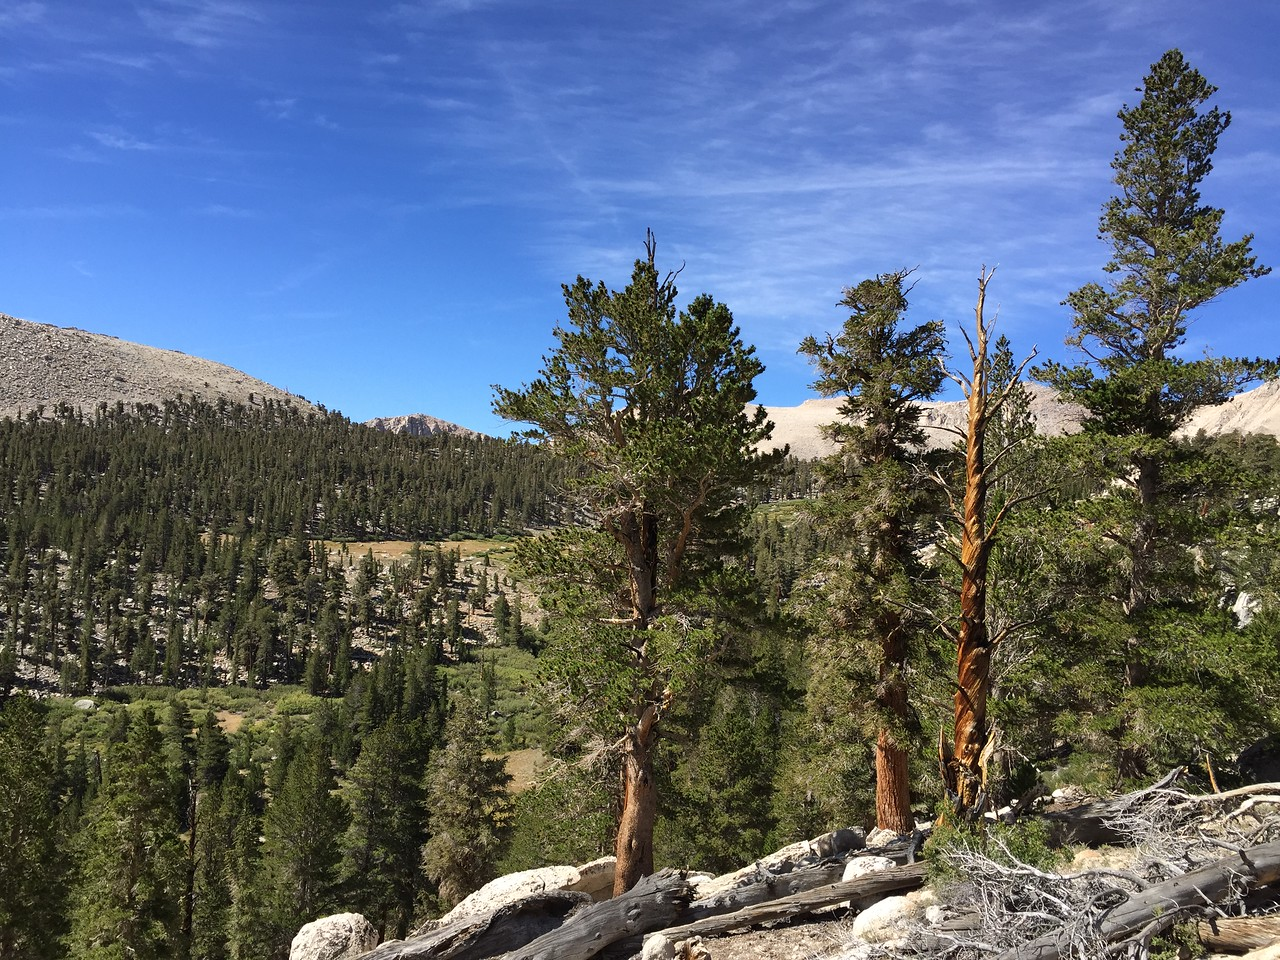 The view on our way up to the Cottonwood Lakes